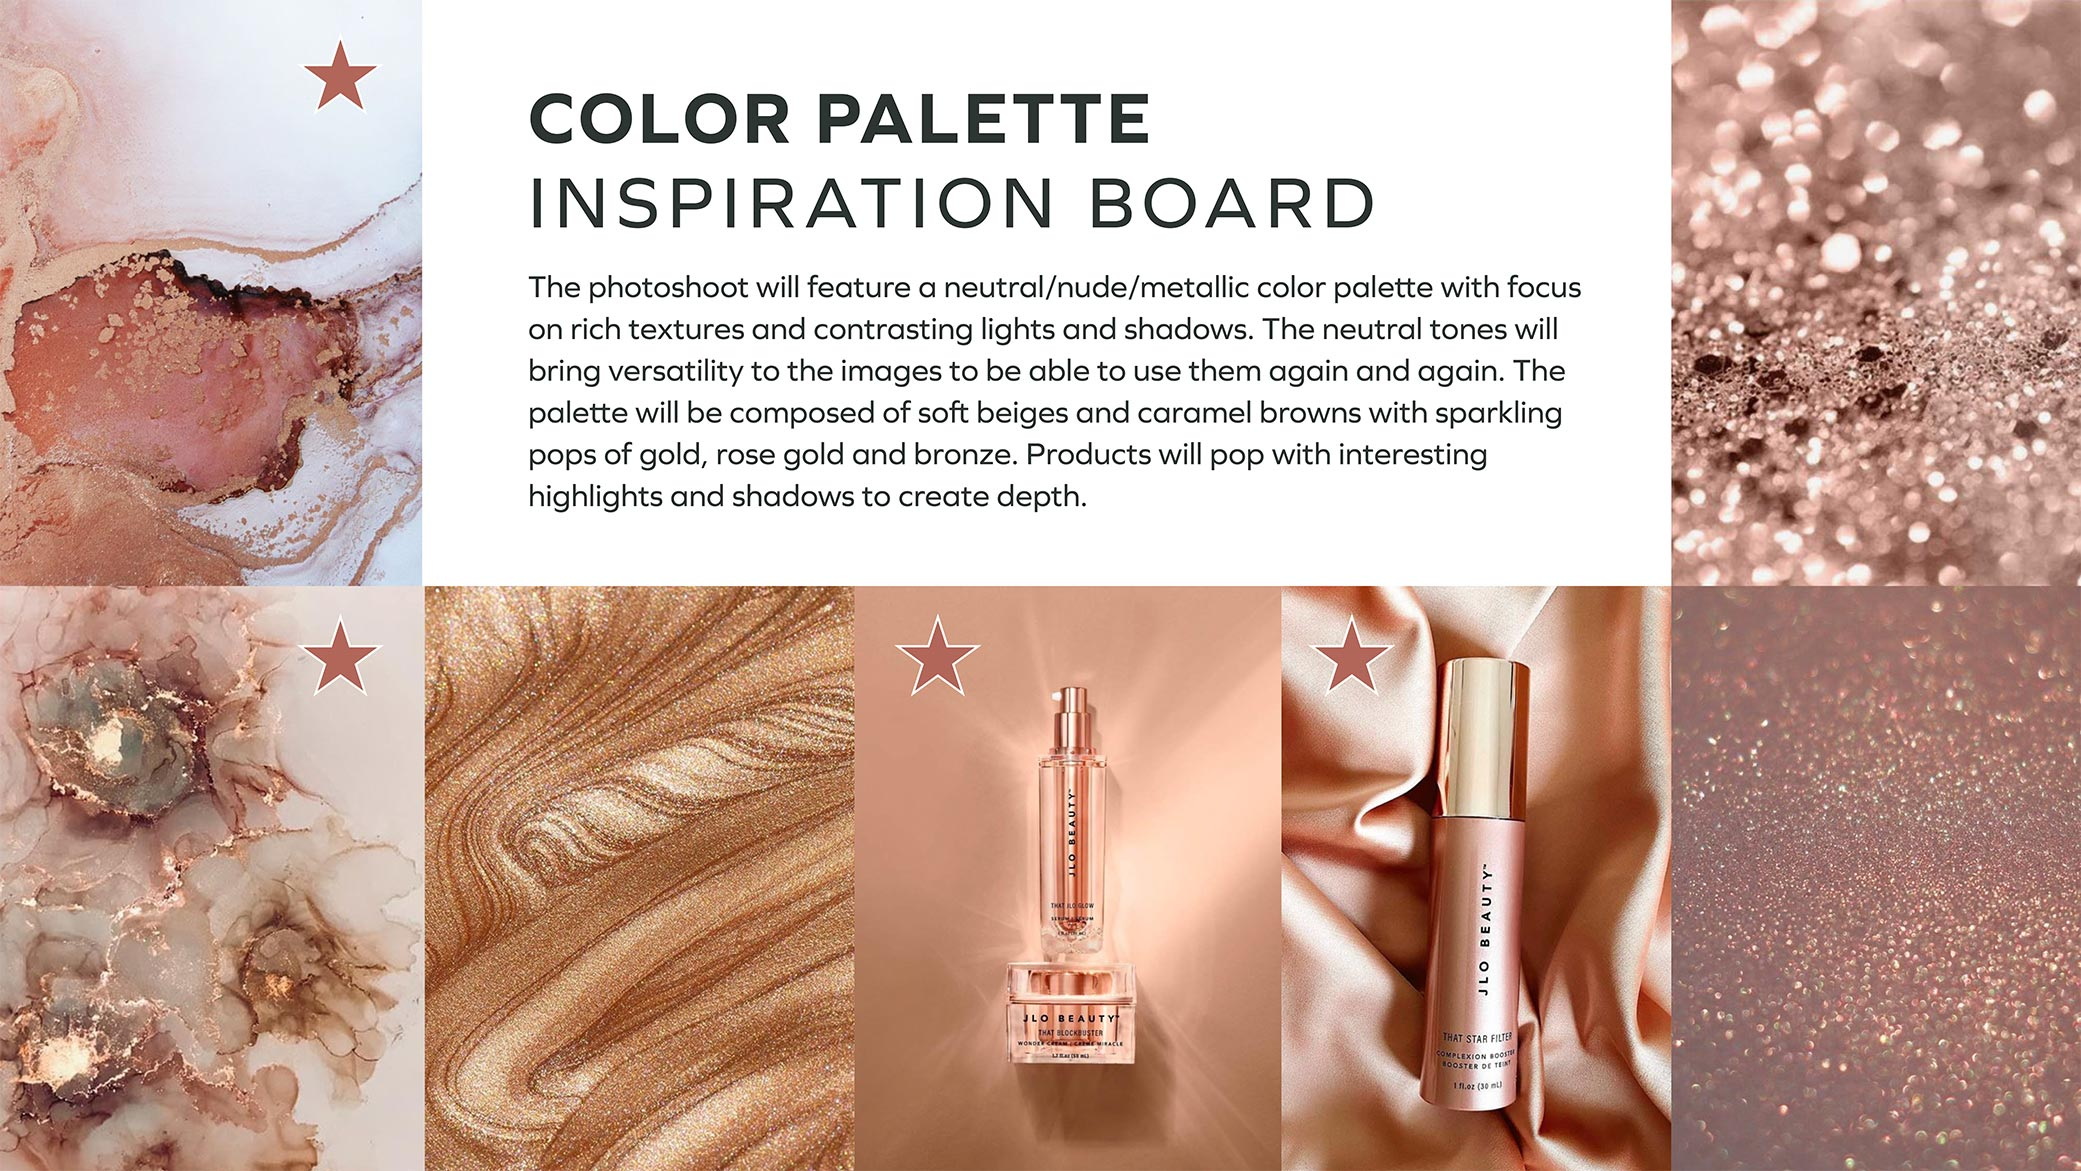 CTRL Cosmetics color palette inspiration board showcasing tones, textures and images.